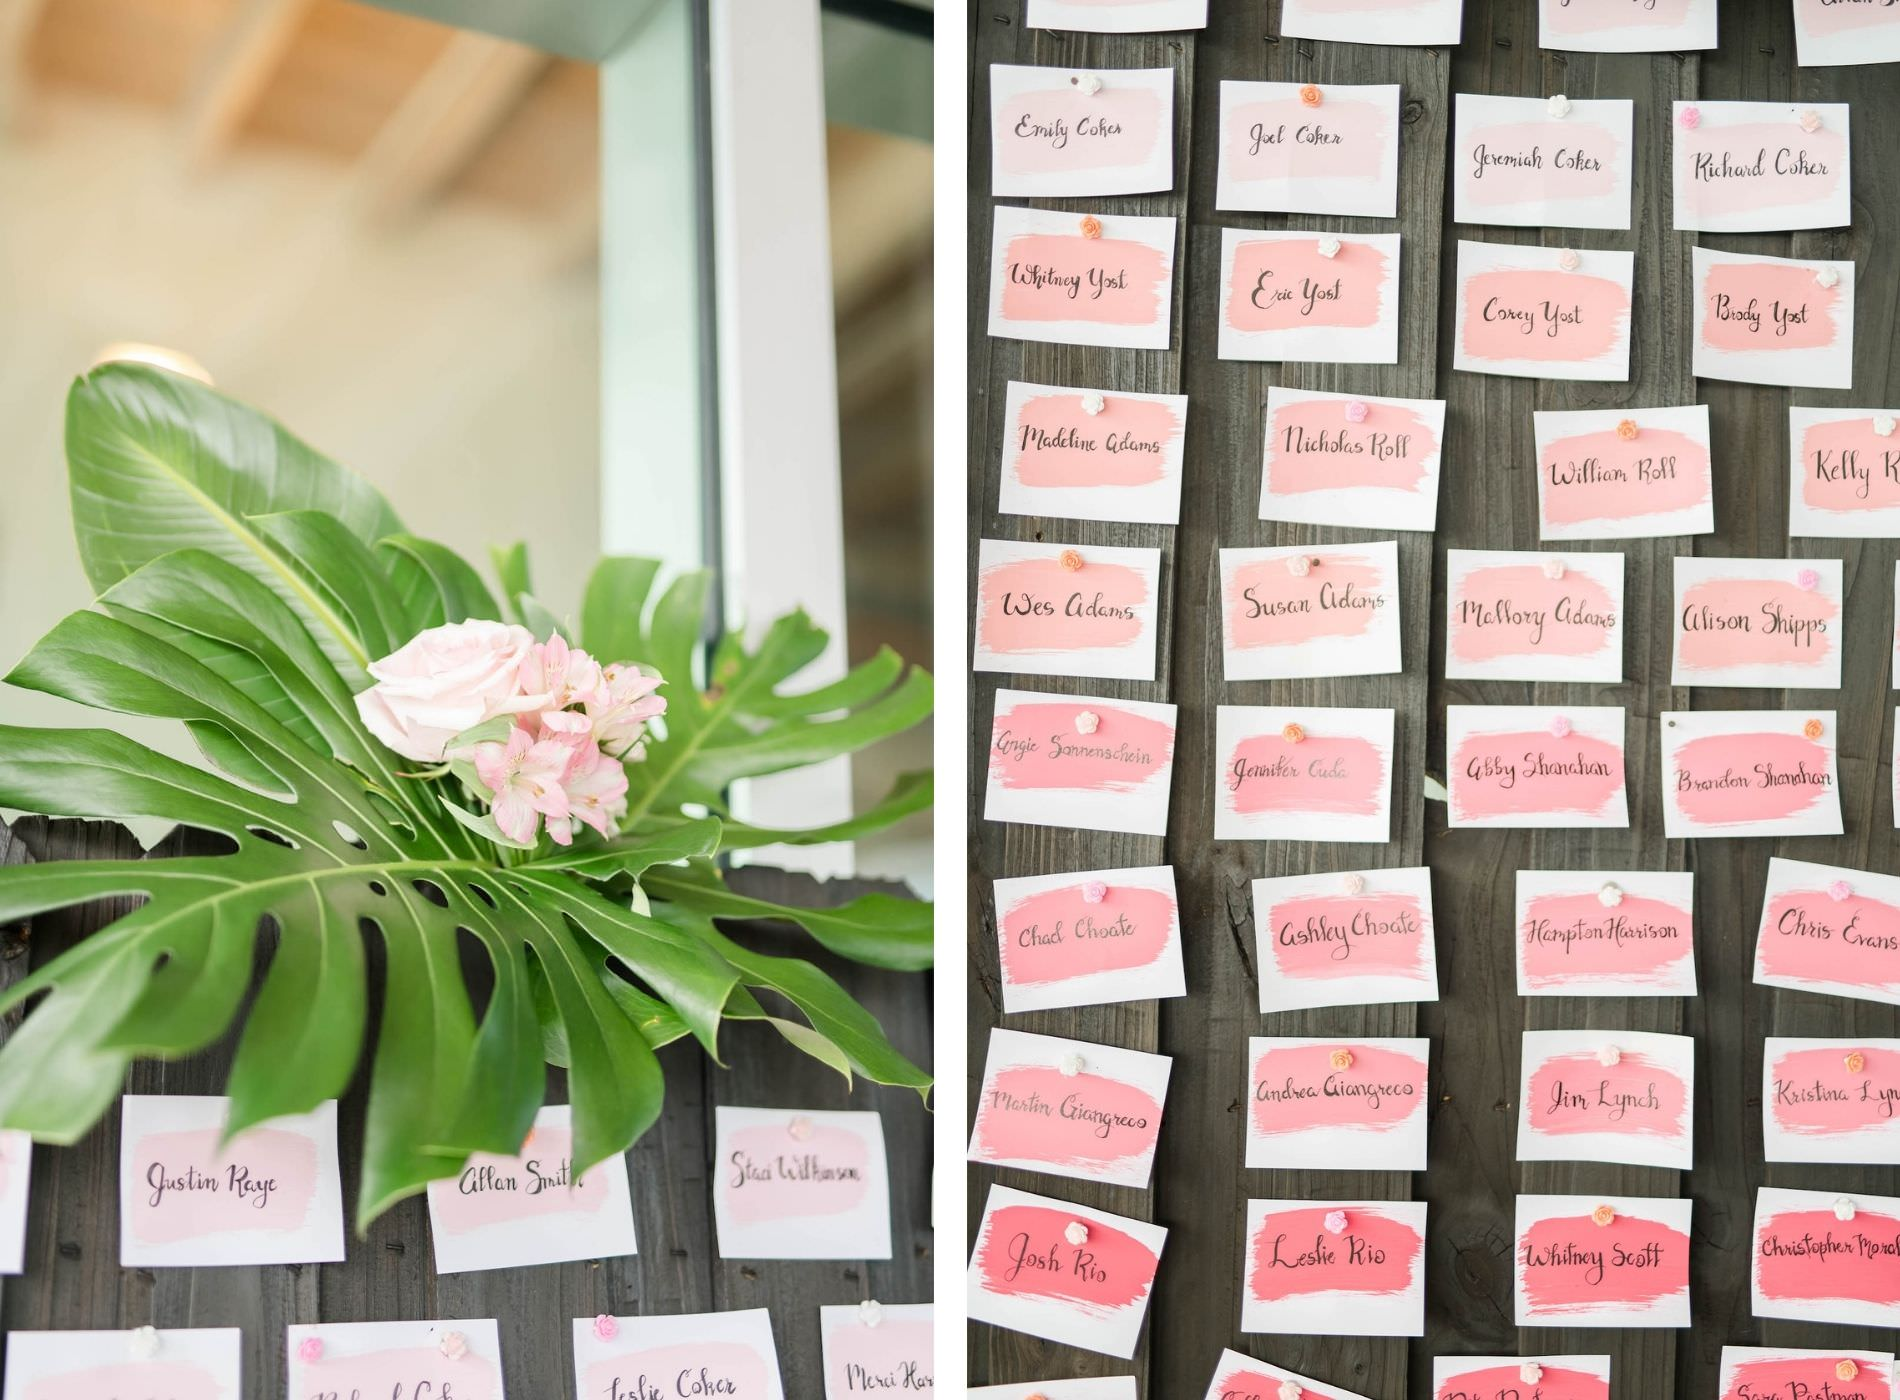 Tropical Wedding Reception Decor, Monstera Palm Leaf, Pink Watercolor Seating Cards on Wood Board | Tampa Bay Wedding Planner Coastal Coordinating